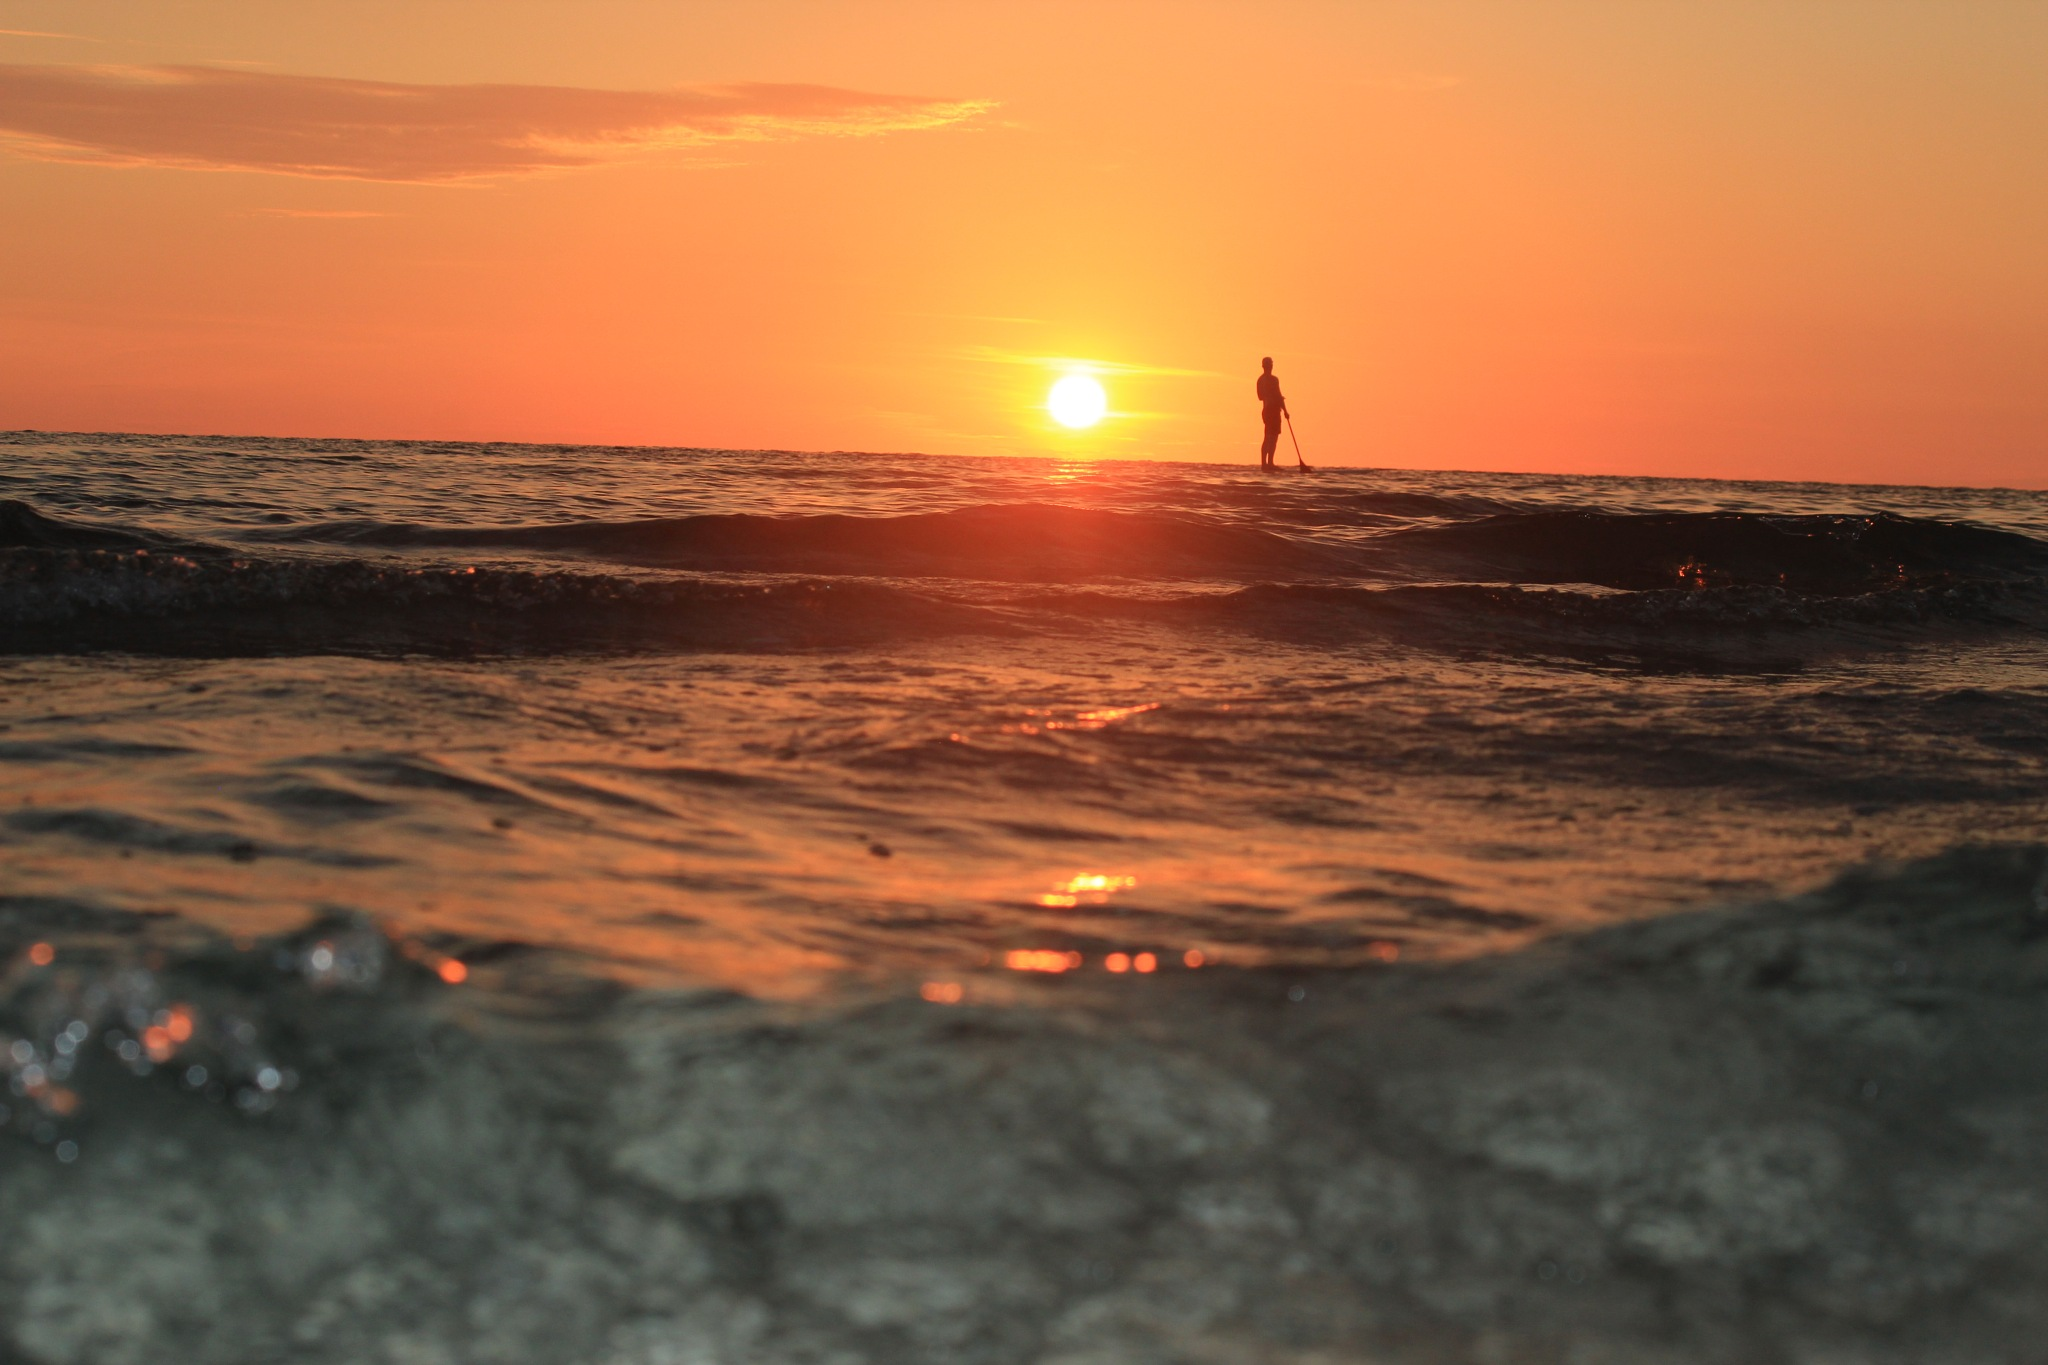 Sunset Paddle board by troublebbm